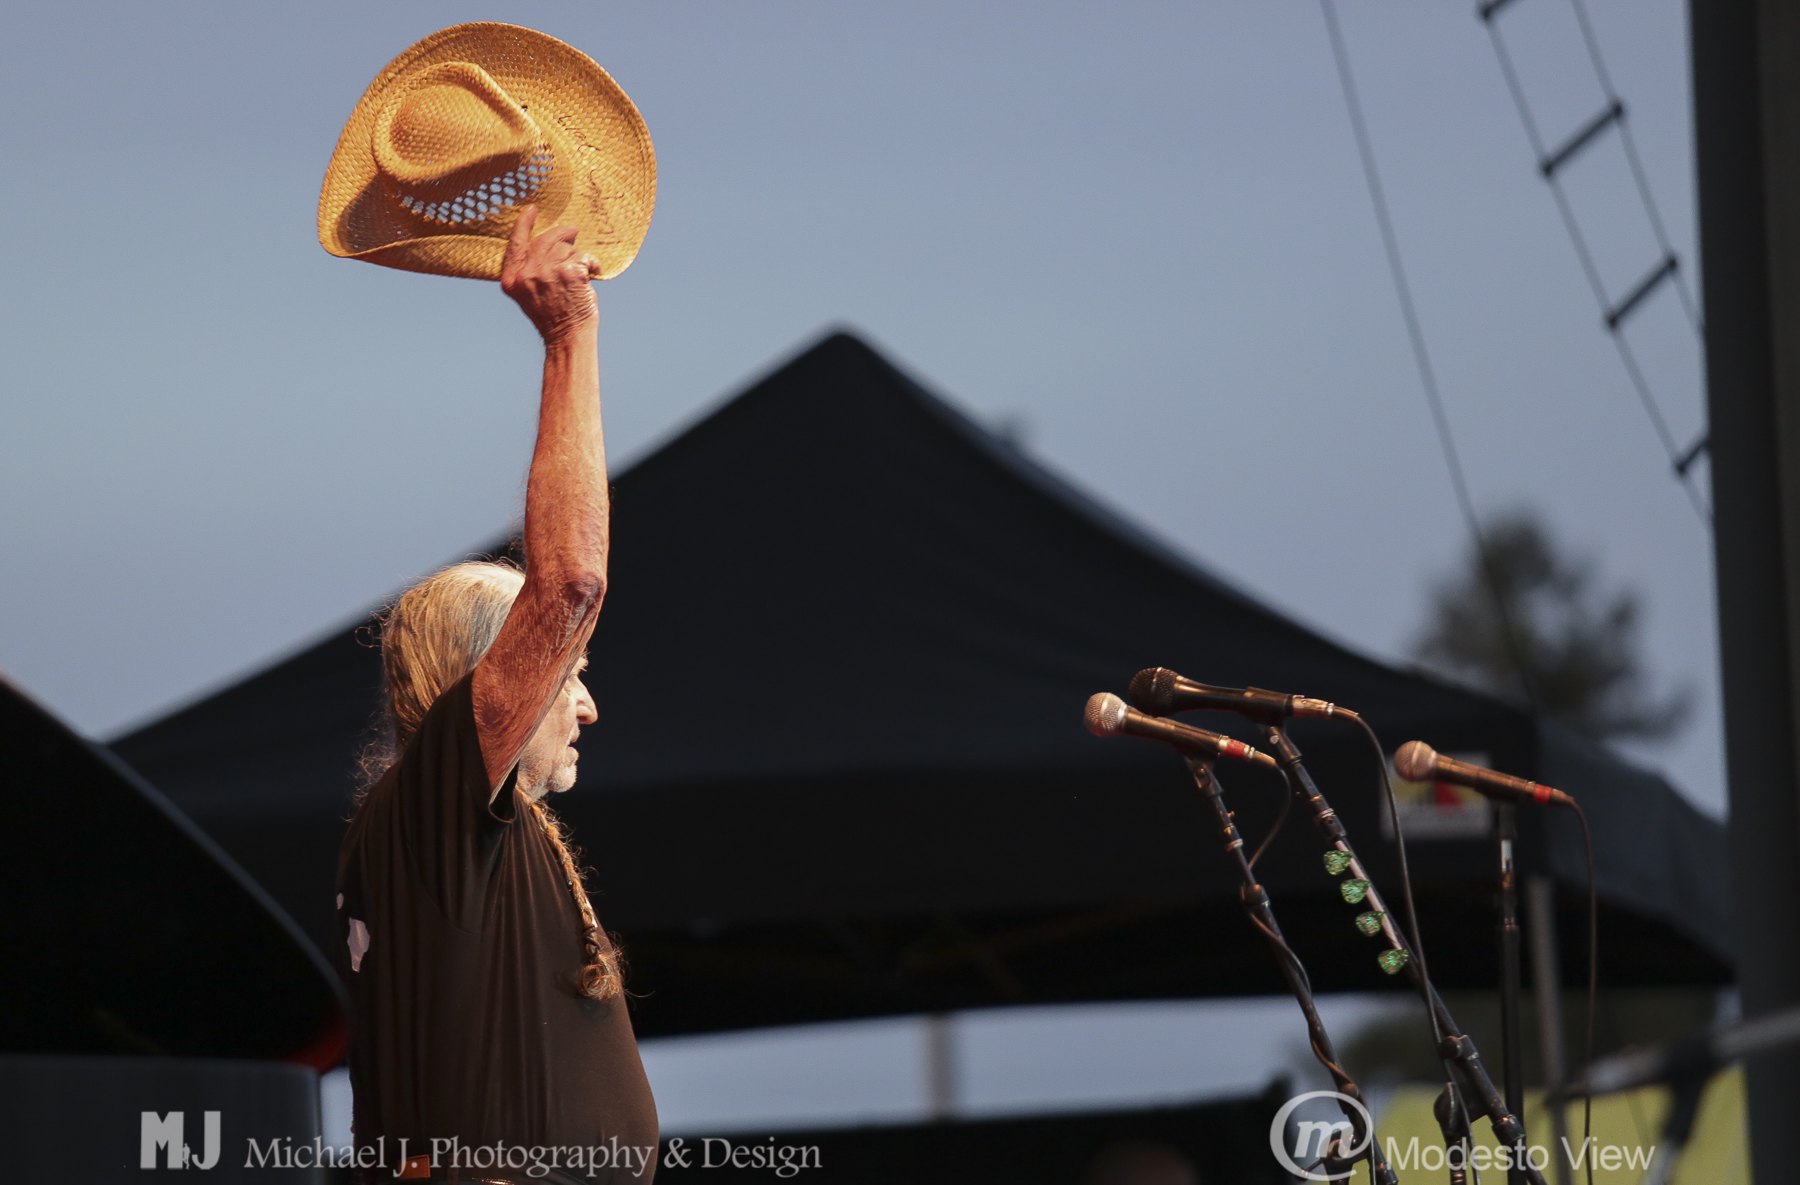 Willie Nelson concert Image